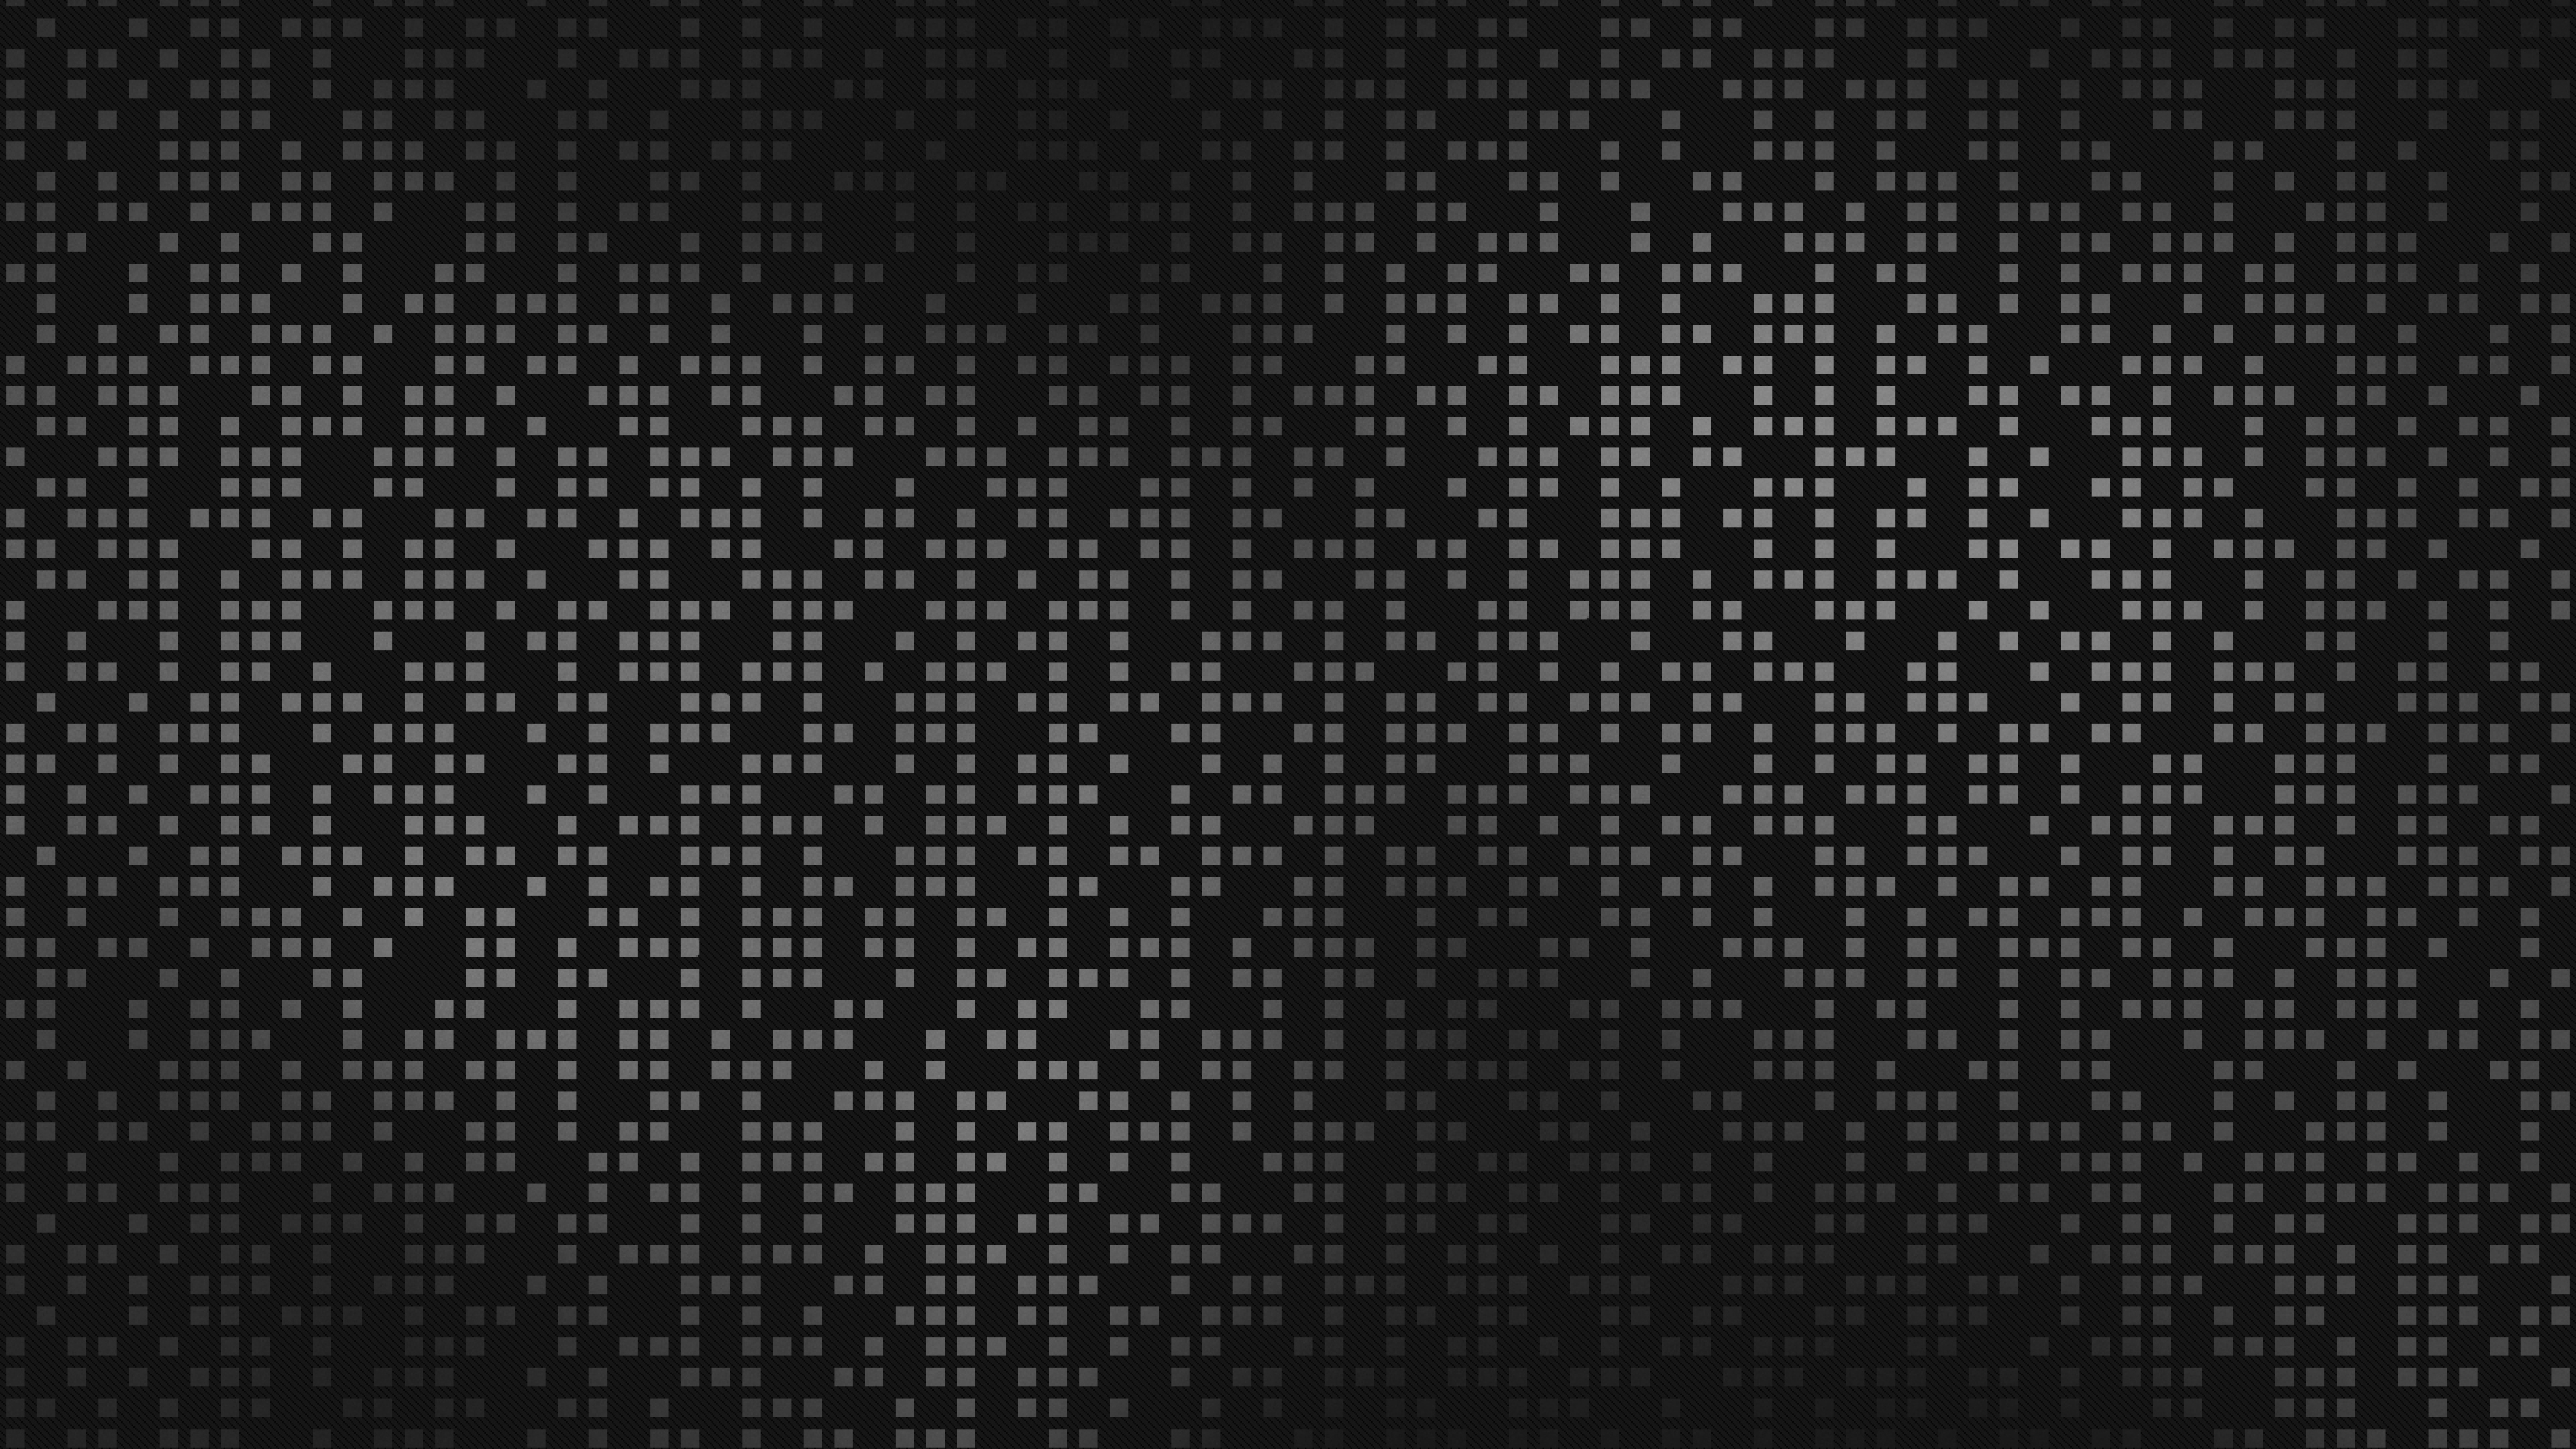 4k ultra hd 3840x2160 wallpaper gray black texture surface point background 4k ultra hd